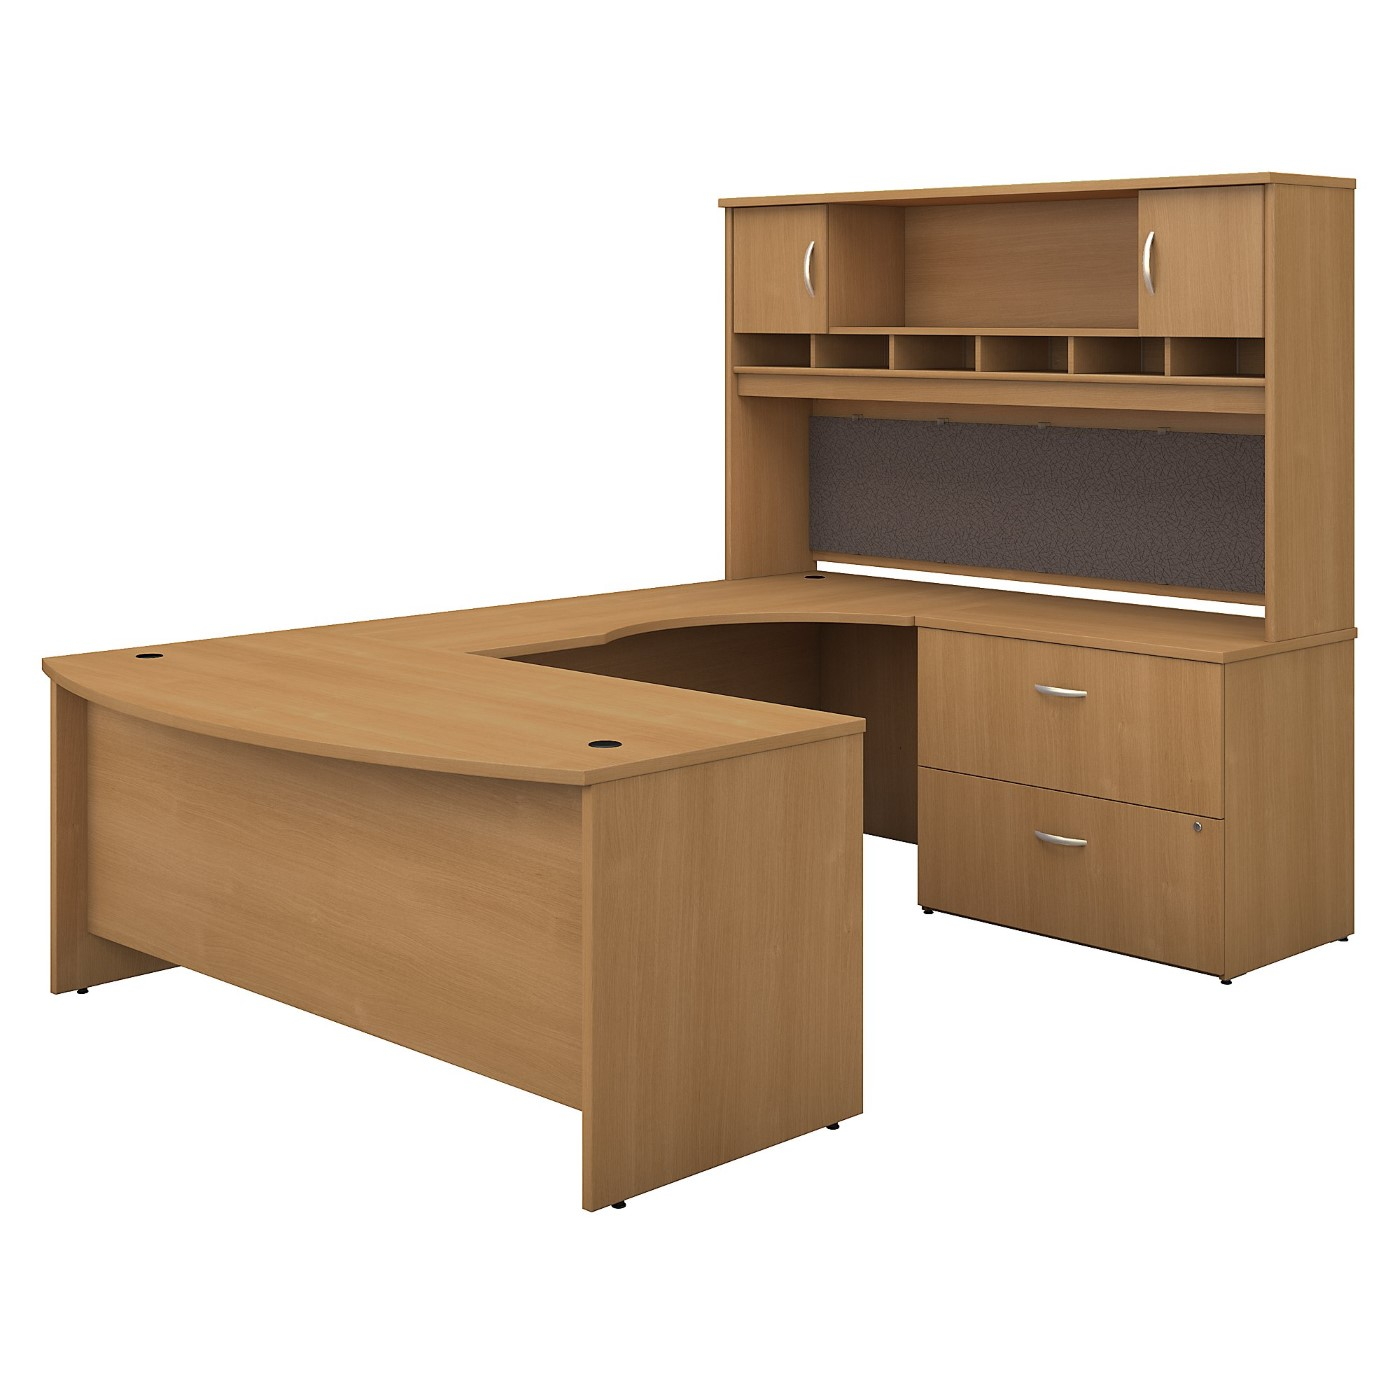 BUSH BUSINESS FURNITURE SERIES C 72W RIGHT HANDED BOW FRONT U SHAPED DESK WITH HUTCH AND STORAGE. FREE SHIPPING SALE DEDUCT 10% MORE ENTER '10percent' IN COUPON CODE BOX WHILE CHECKING OUT.